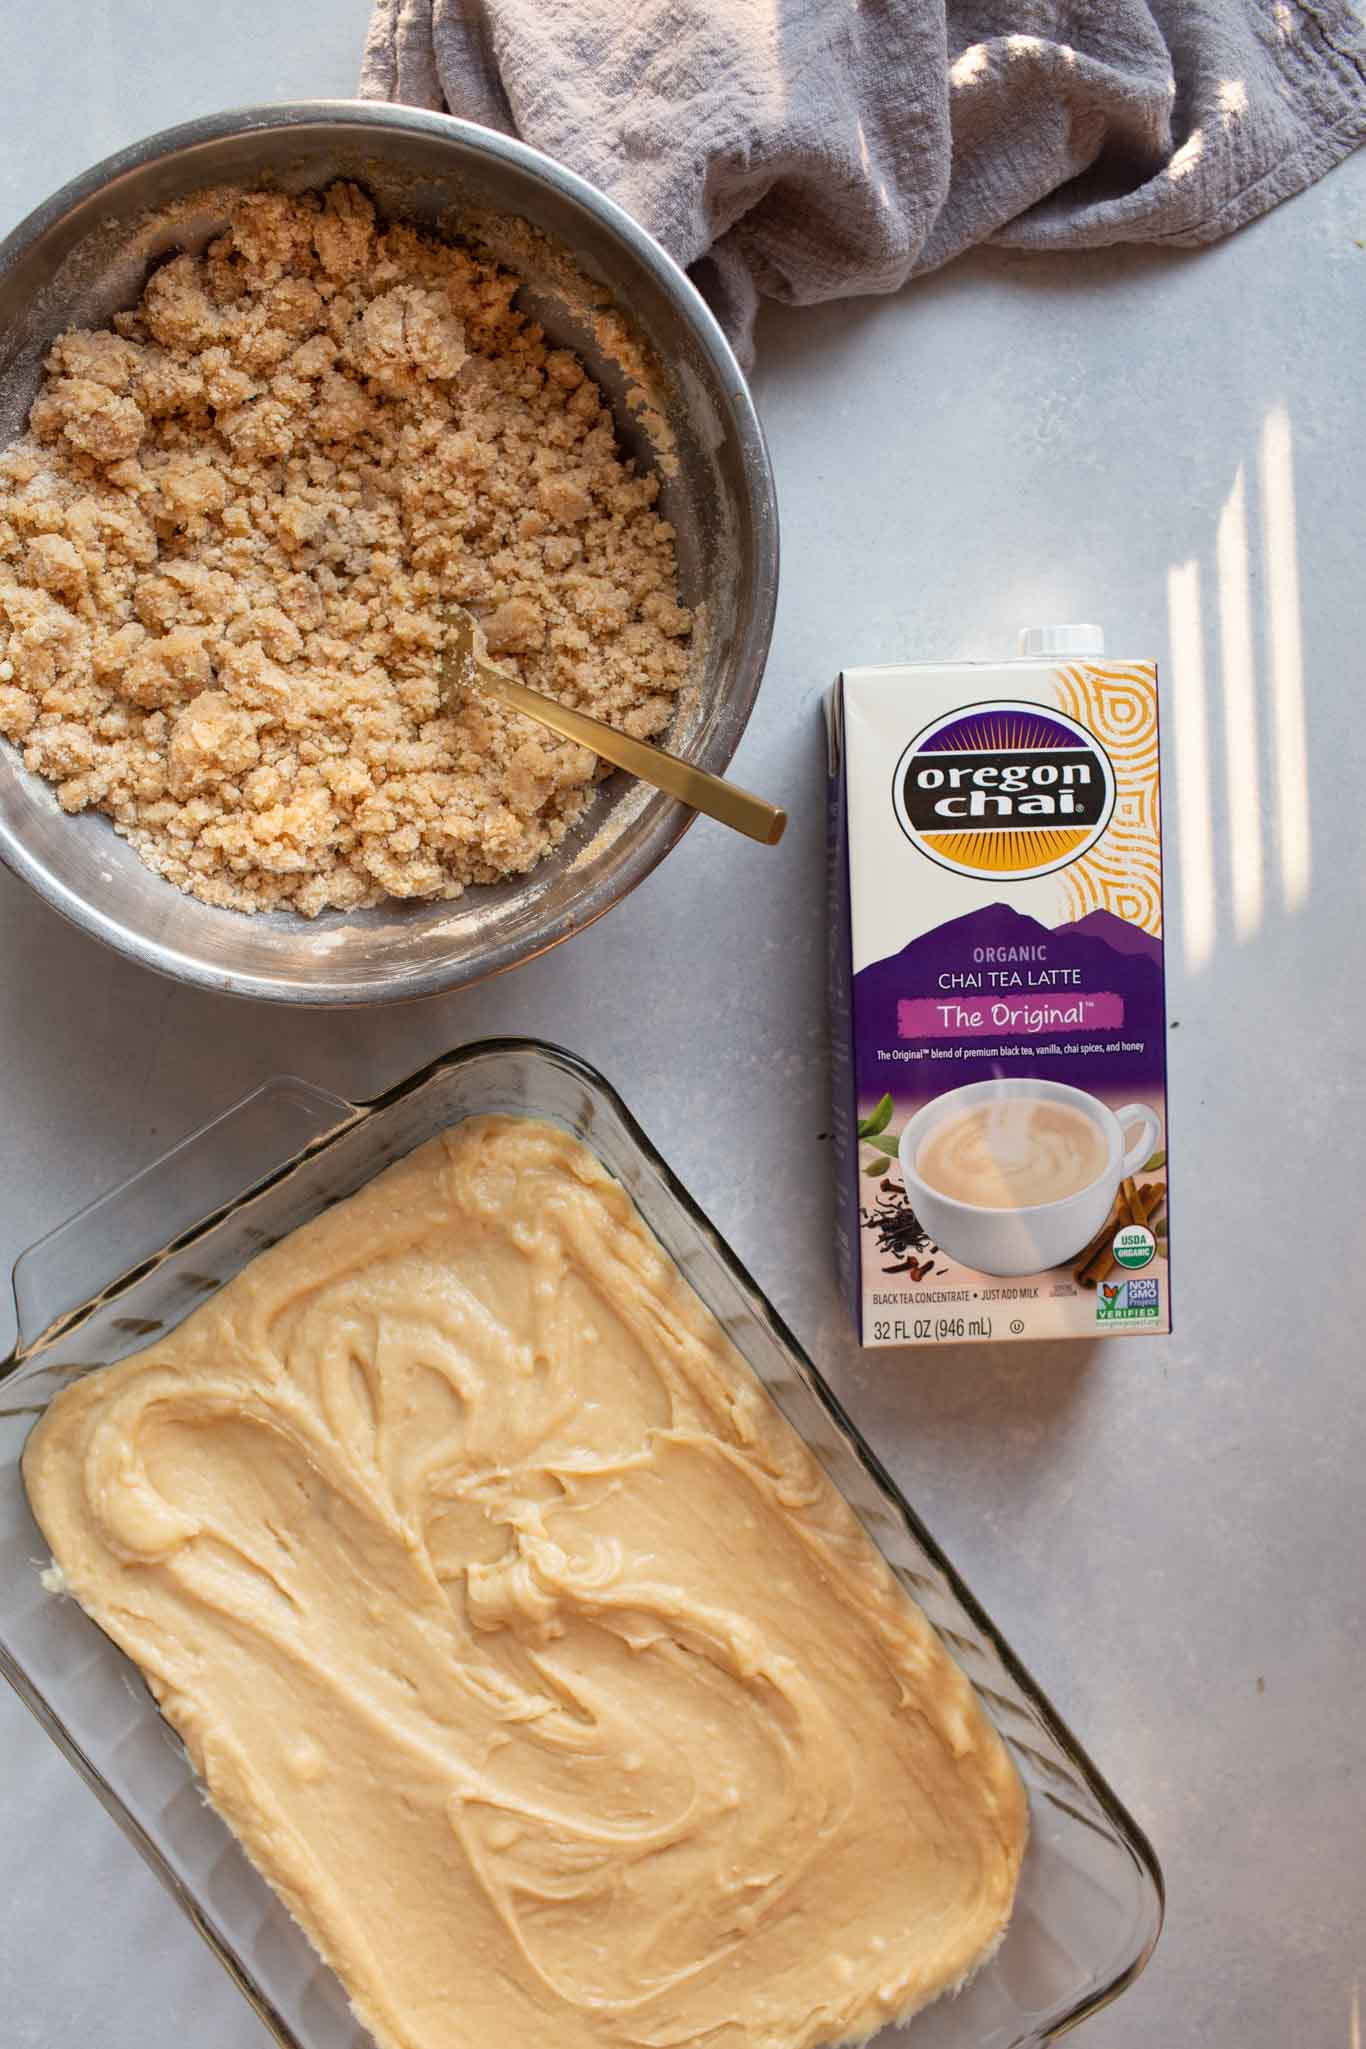 Ingredients for chai spiced crumb cake